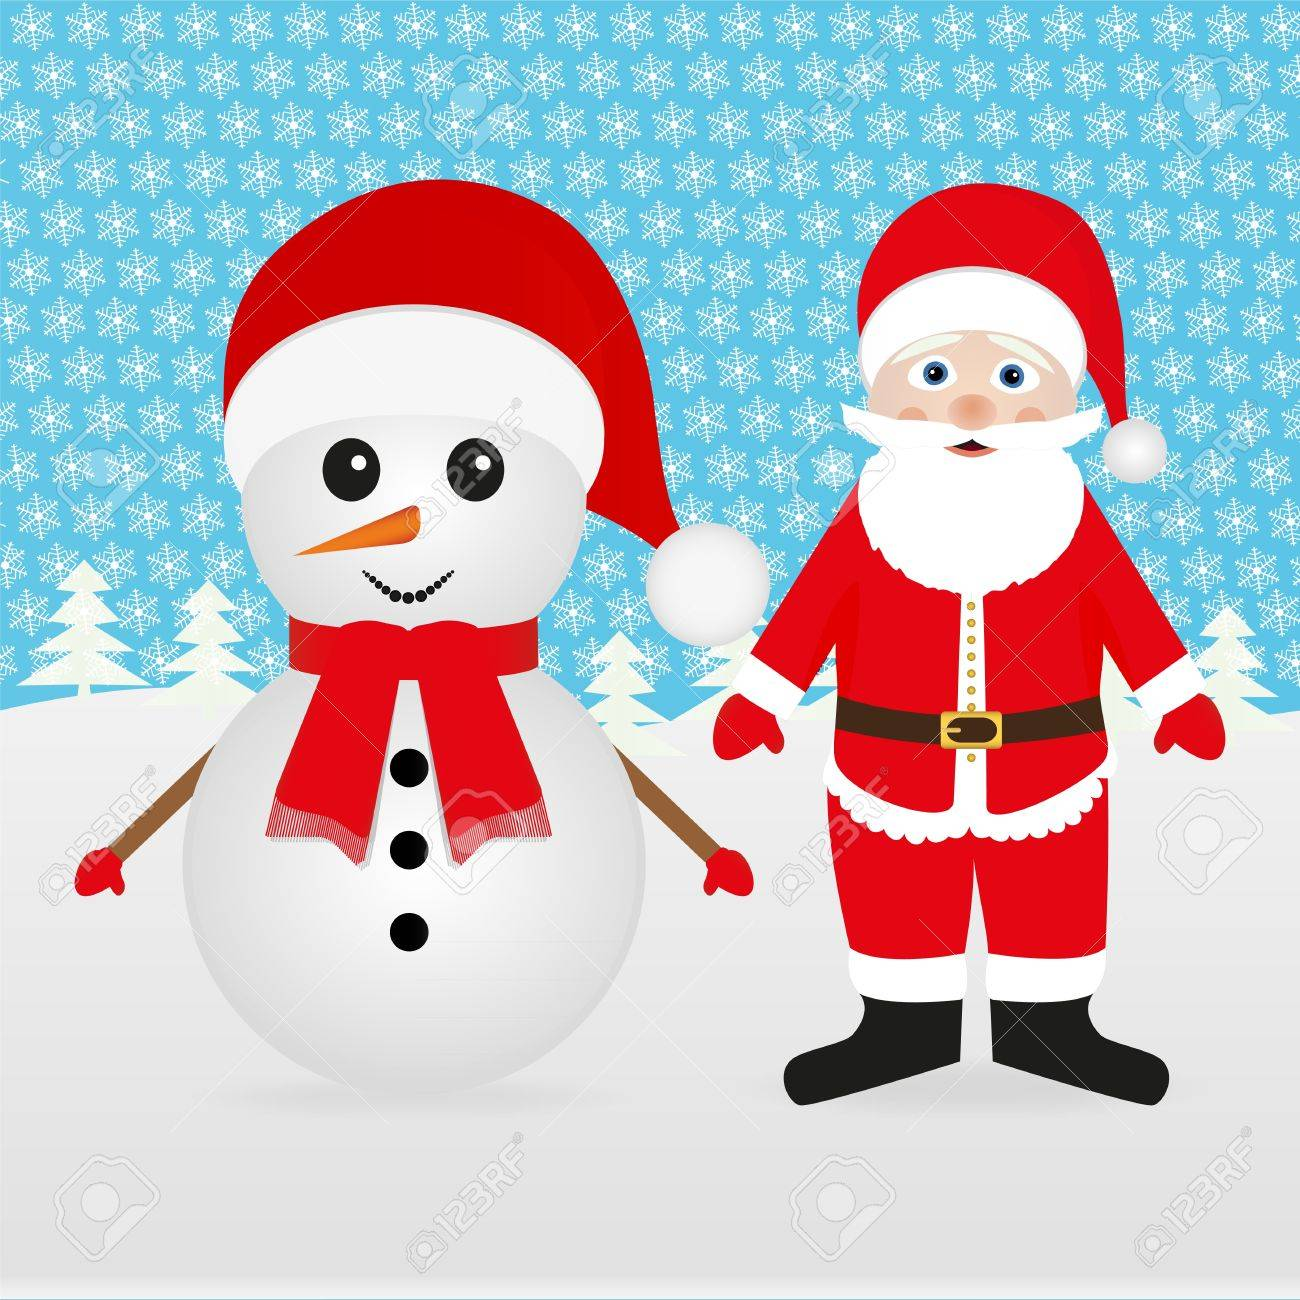 Snowman and Santa Claus peeking out of the woods Stock Vector - 16497392